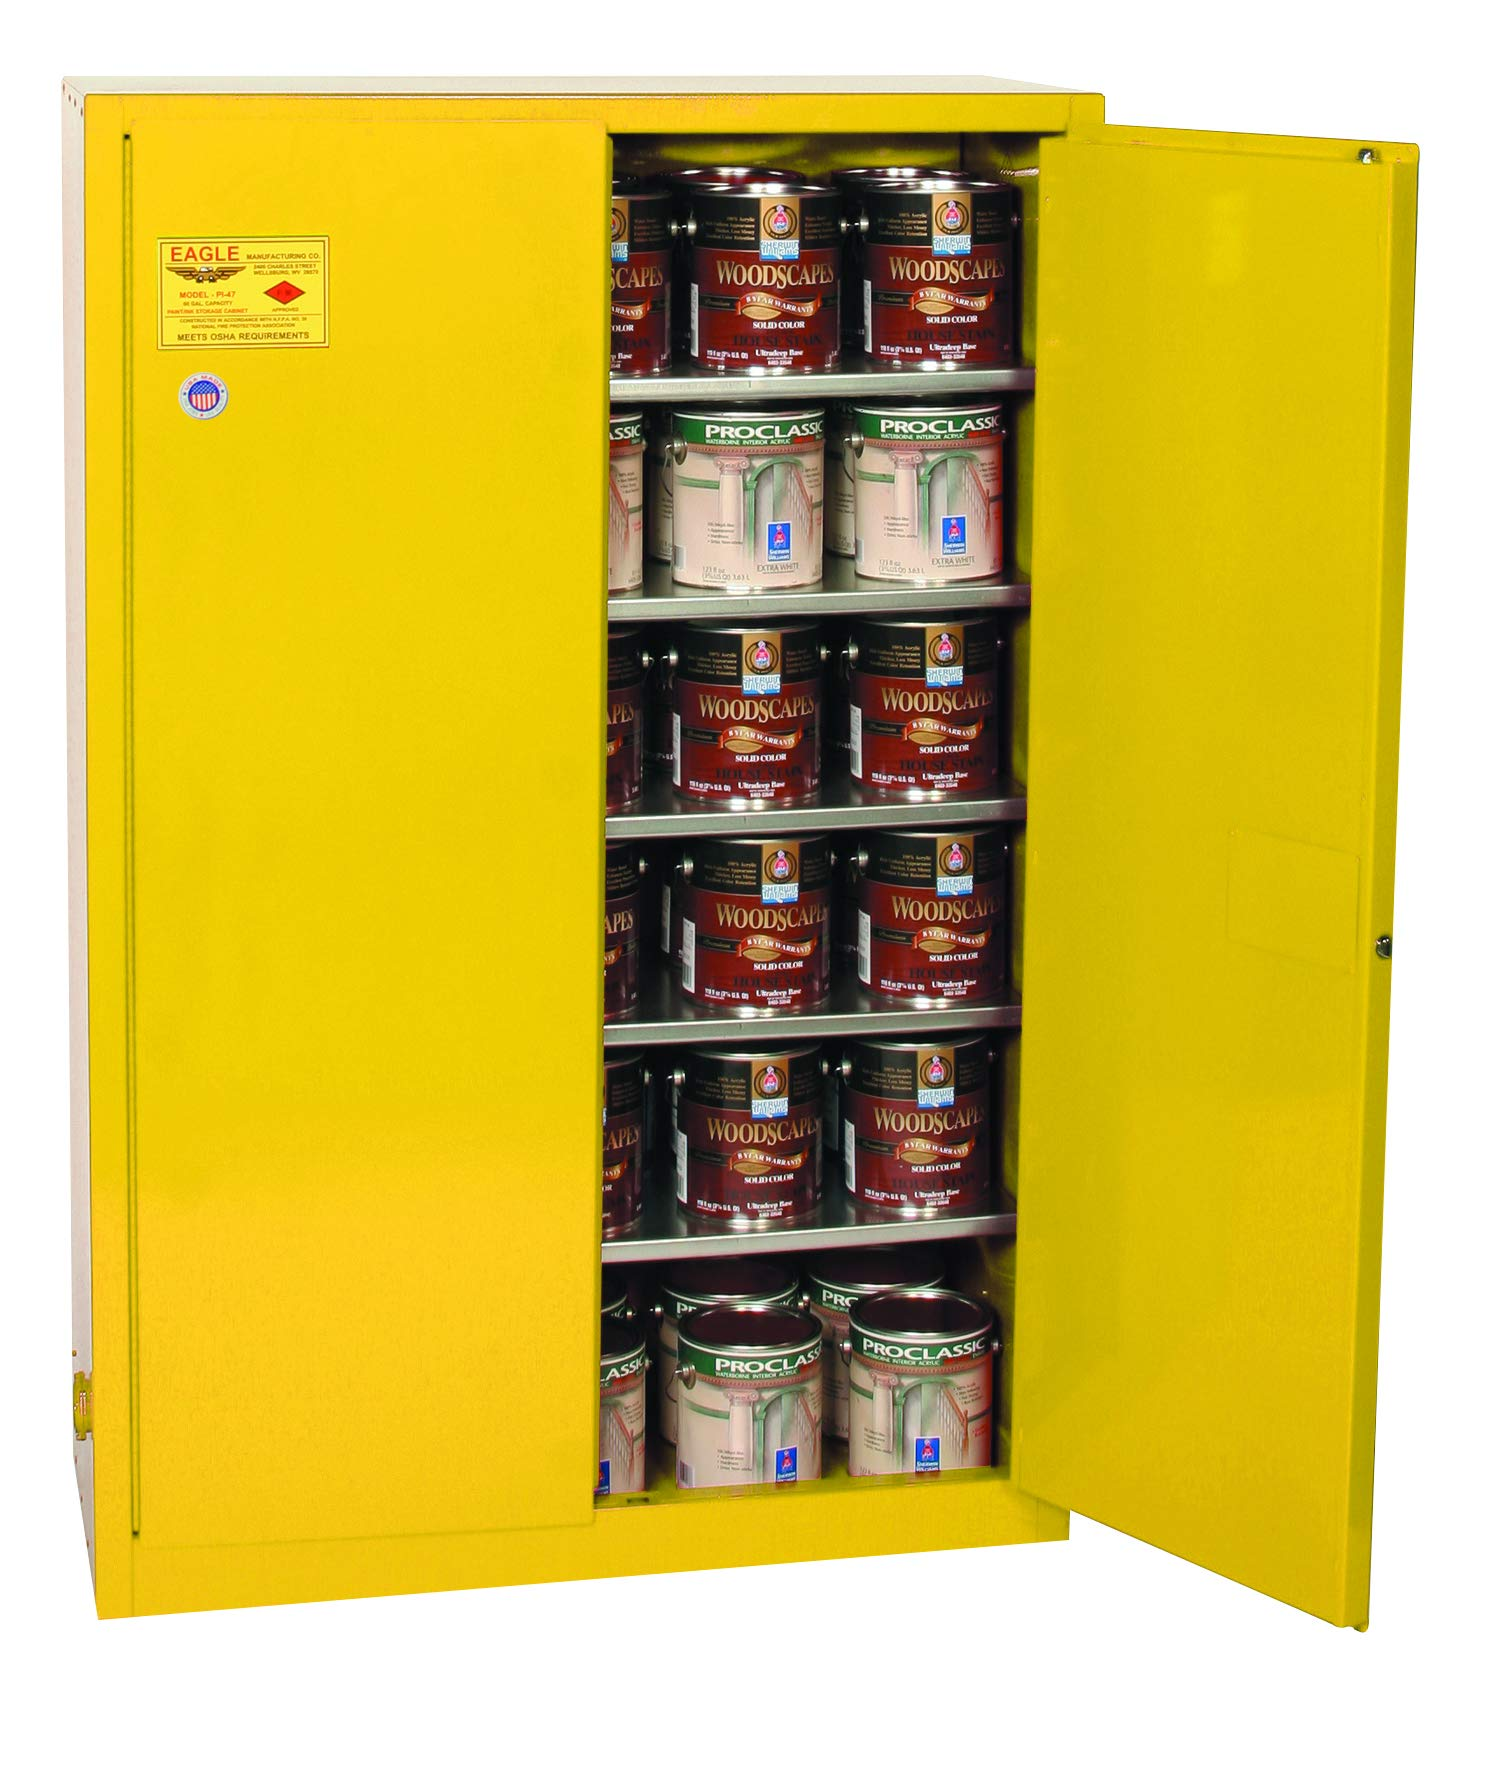 """Eagle YPI47X Safety Cabinet for Paint & Ink, 2 Door Manual Close, 60 gallon, 65""""Height, 43""""Width, 18""""Depth, Steel, Yellow"""